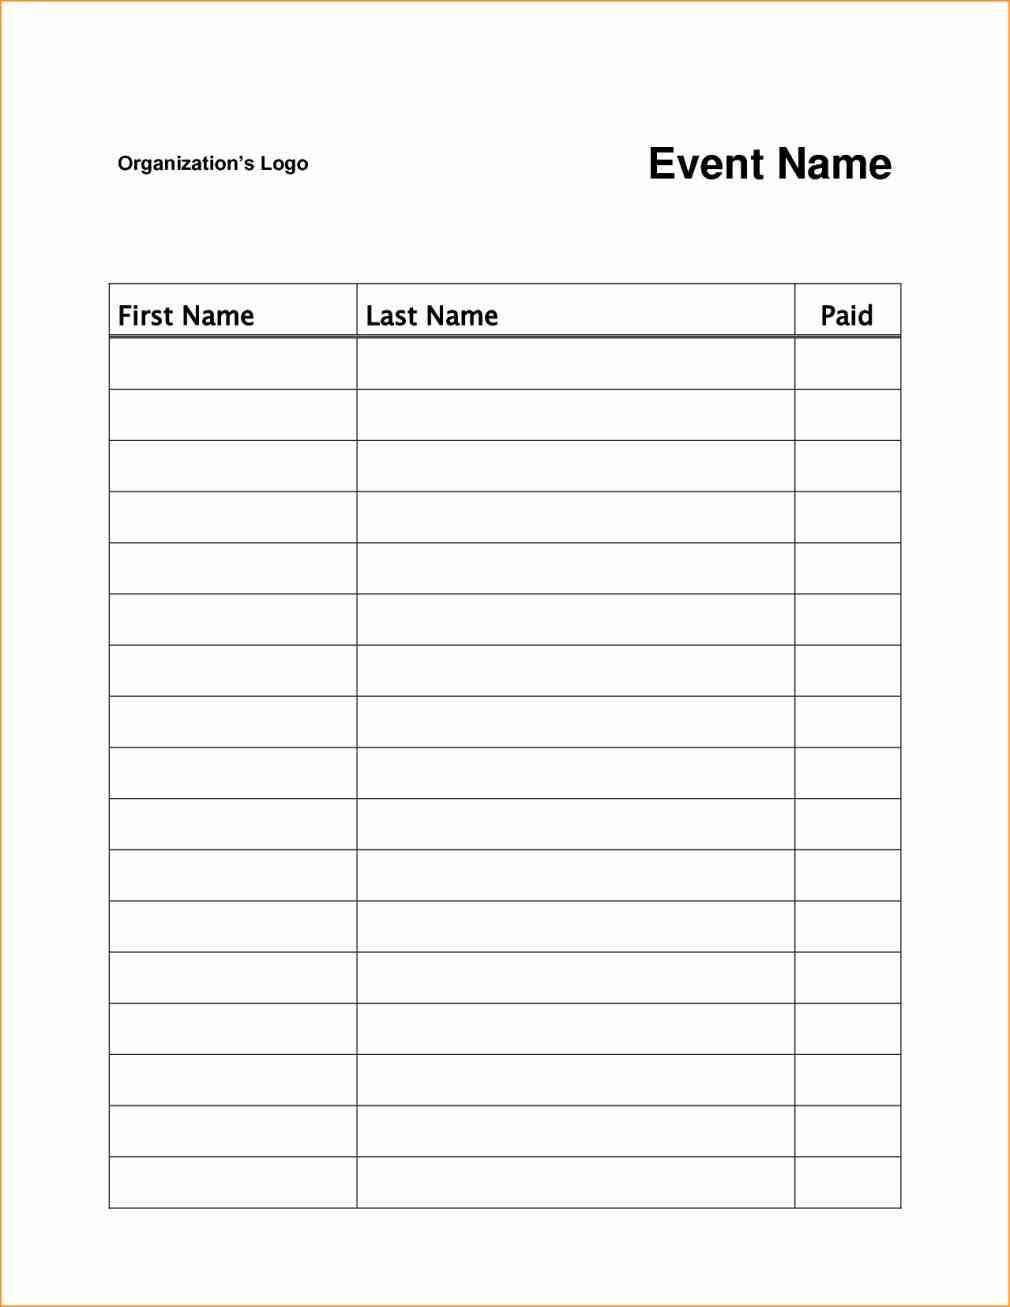 event or class workshop forms a Sign Up Sheet Template Word